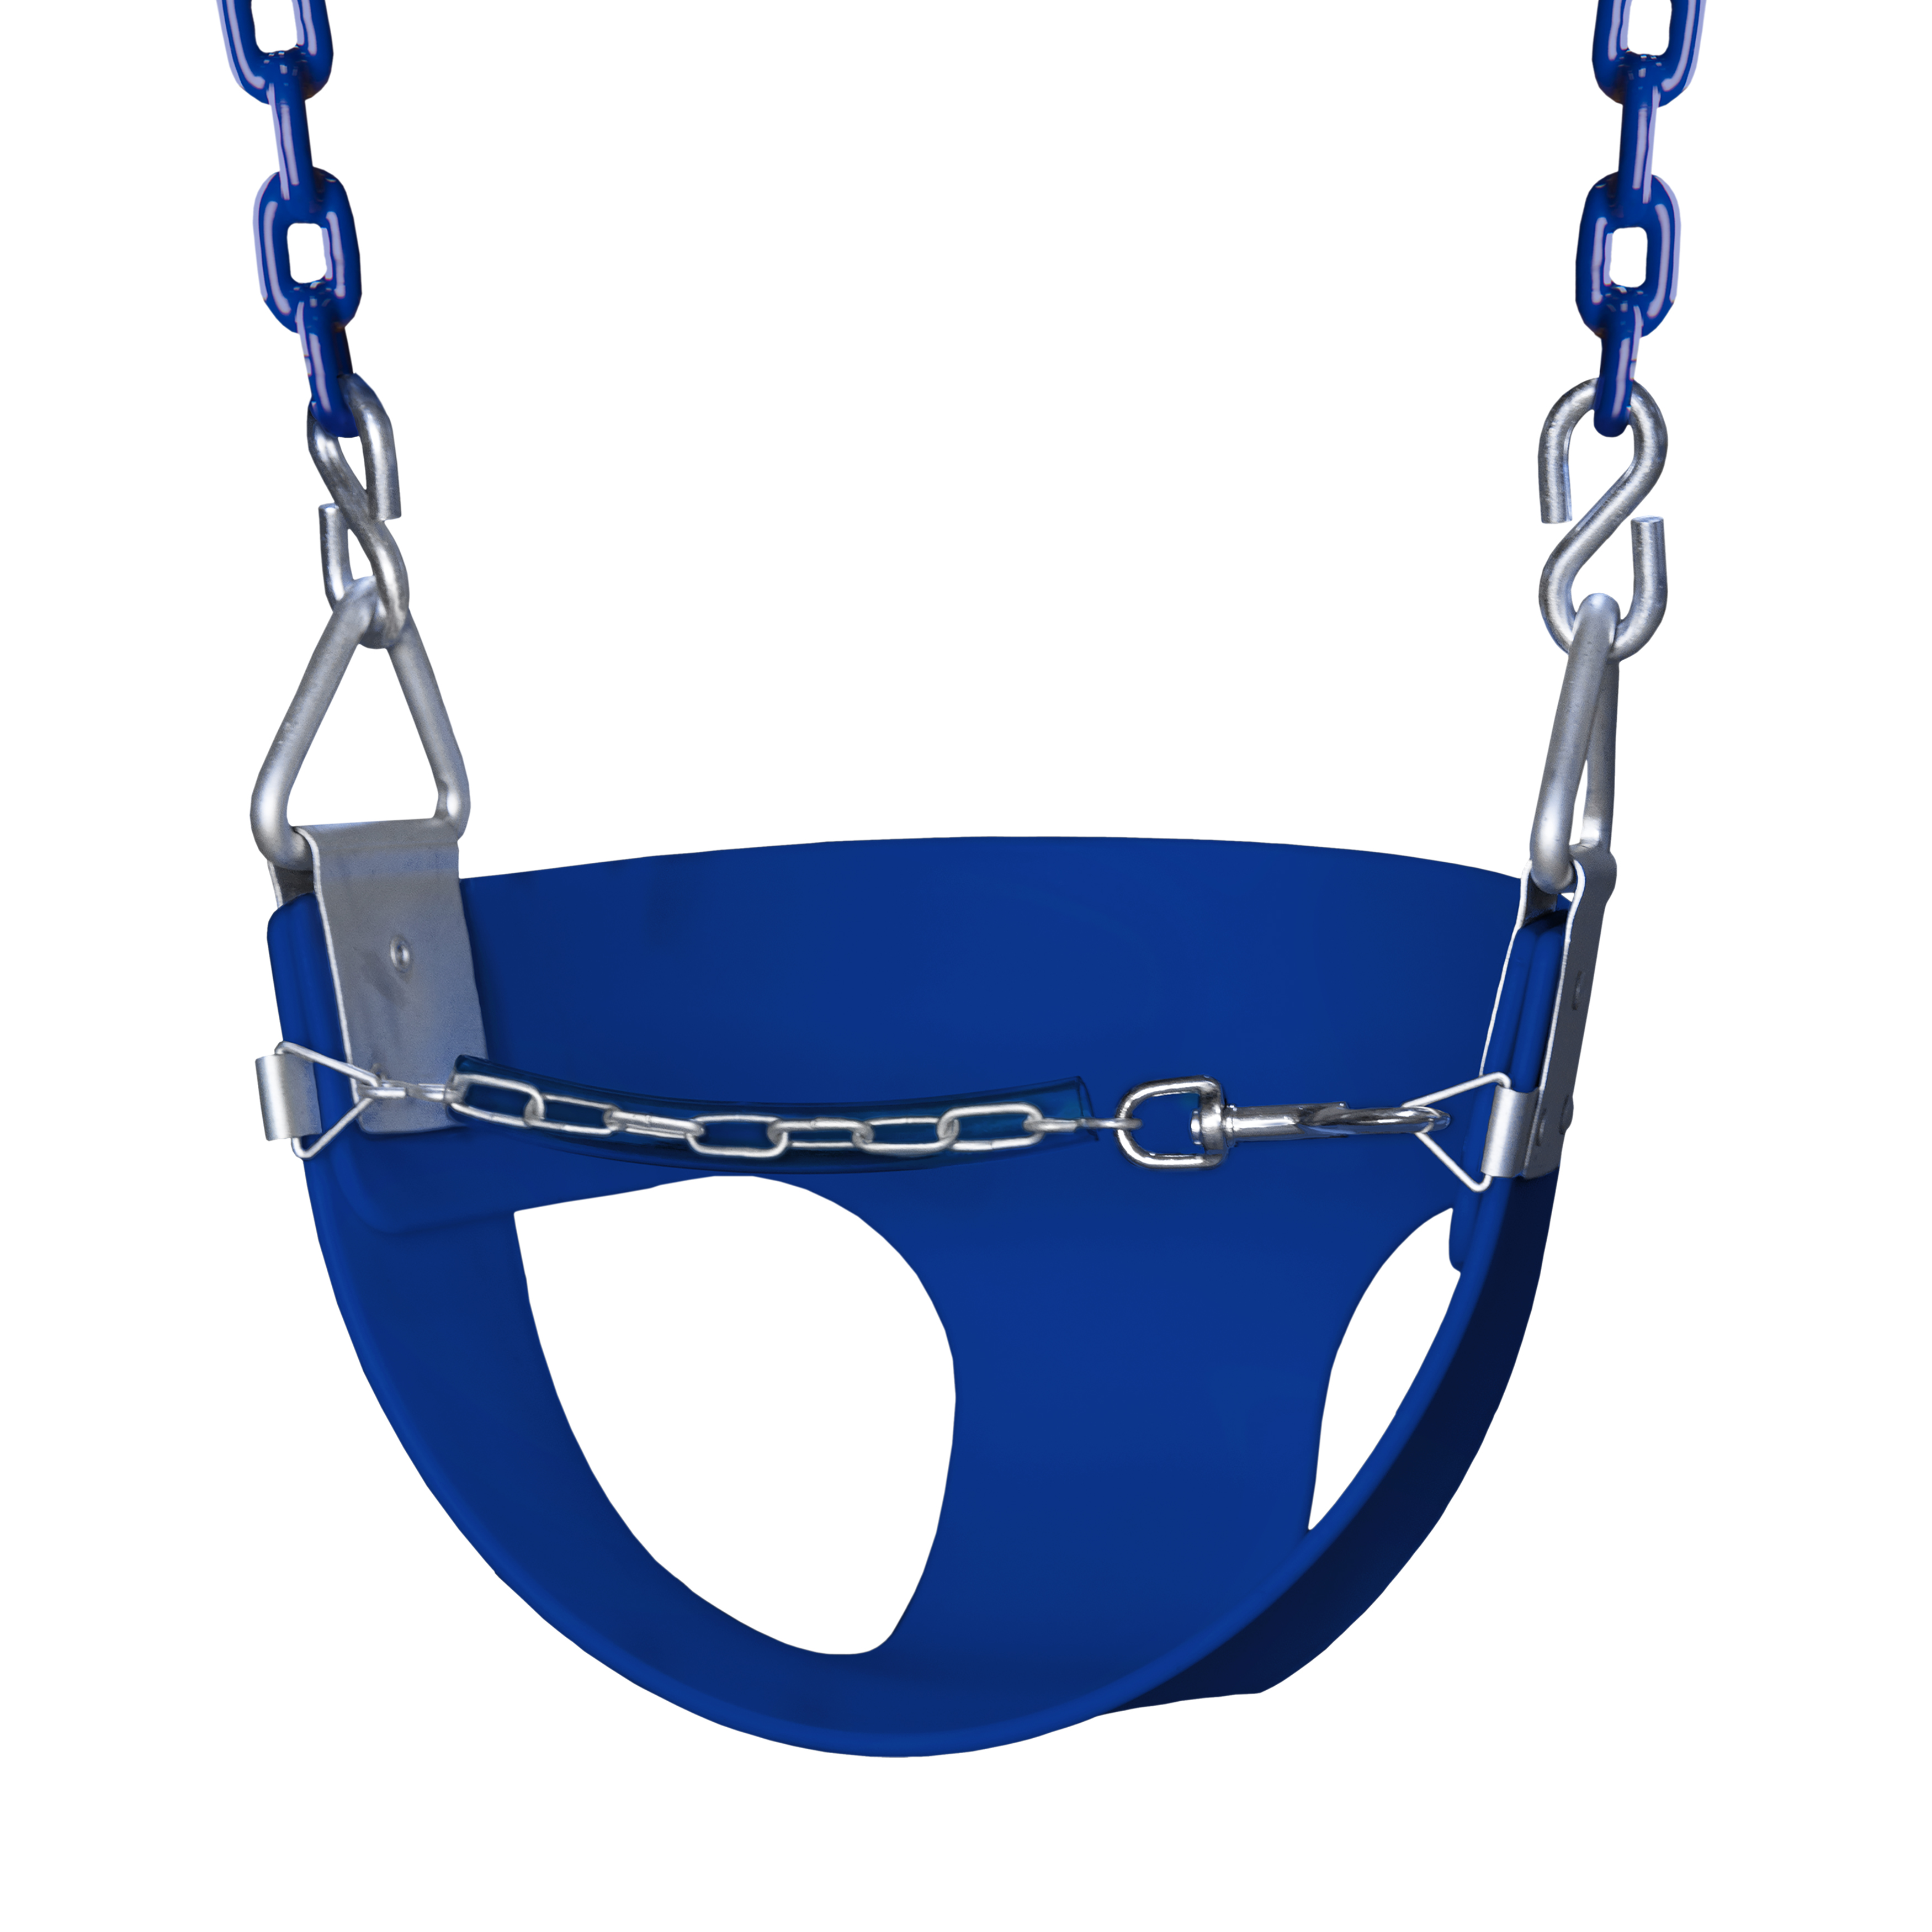 Gorilla Playsets Half Bucket Toddler Swing with Chain, Blue